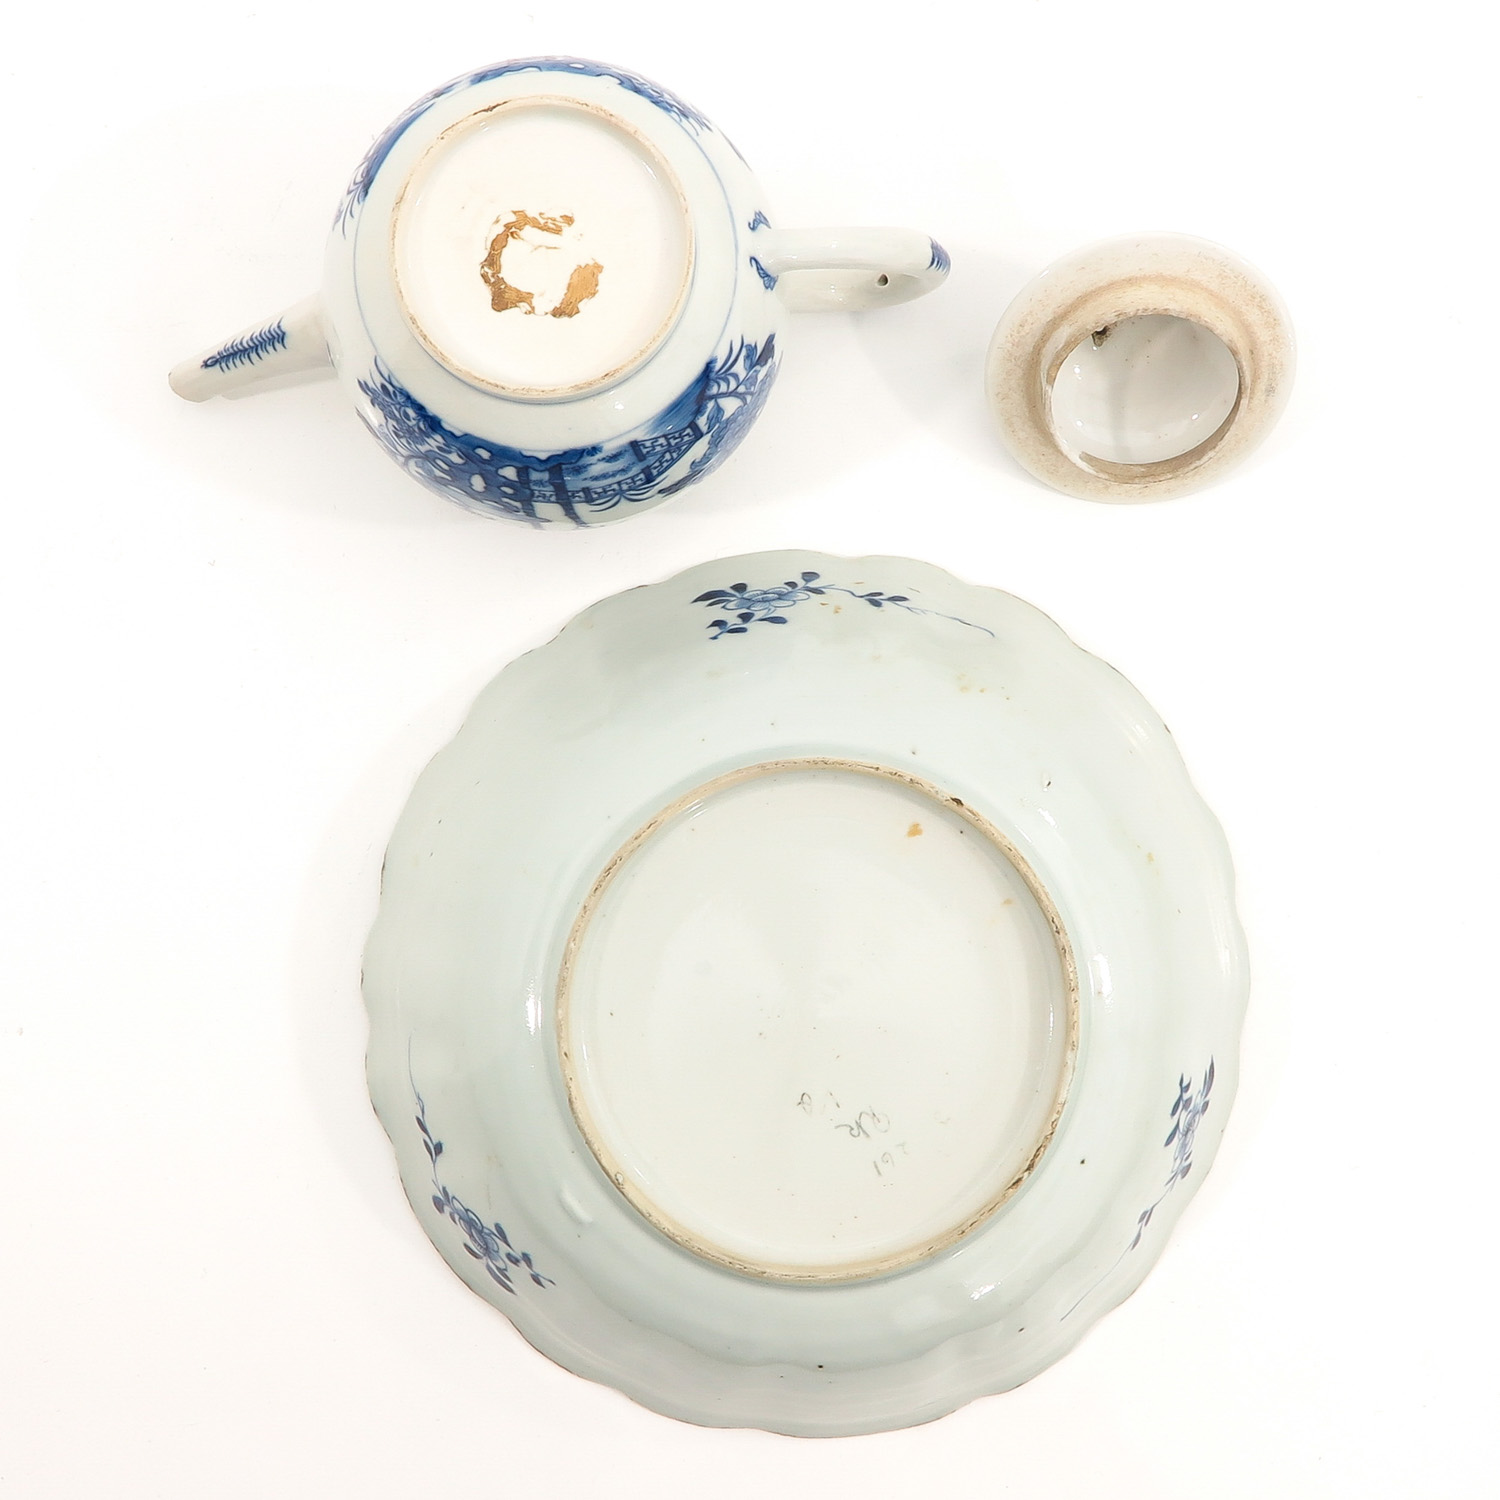 A Blue and White Bowl and Teapot - Image 6 of 10